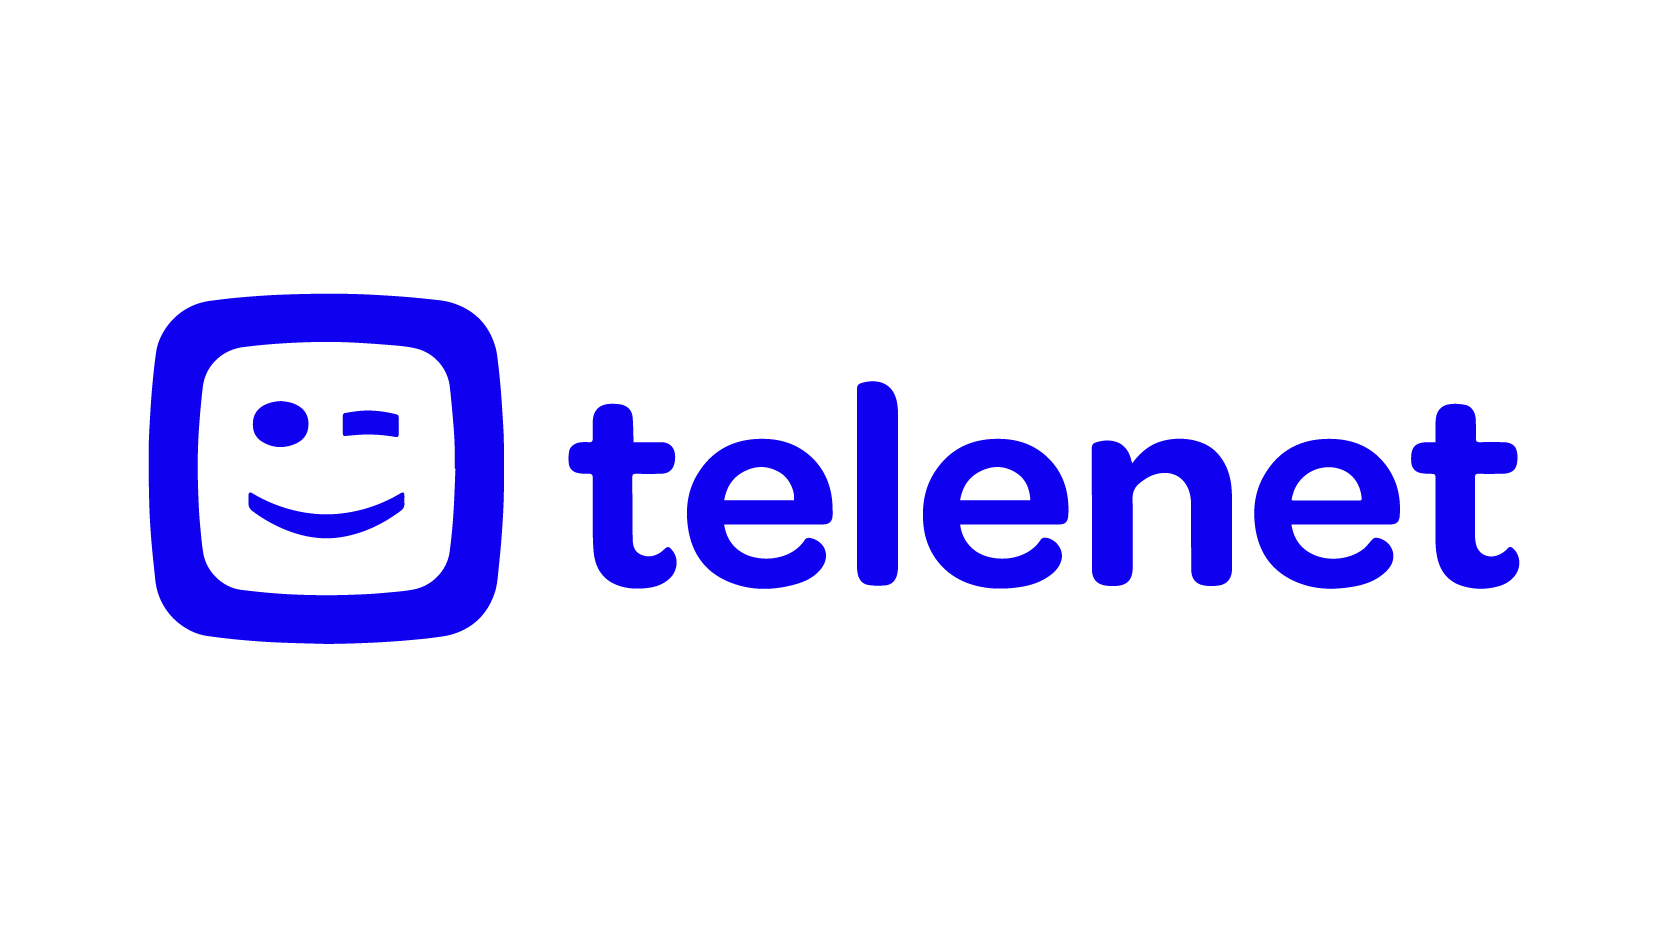 AND&-Sponsor_9 Telenet.png